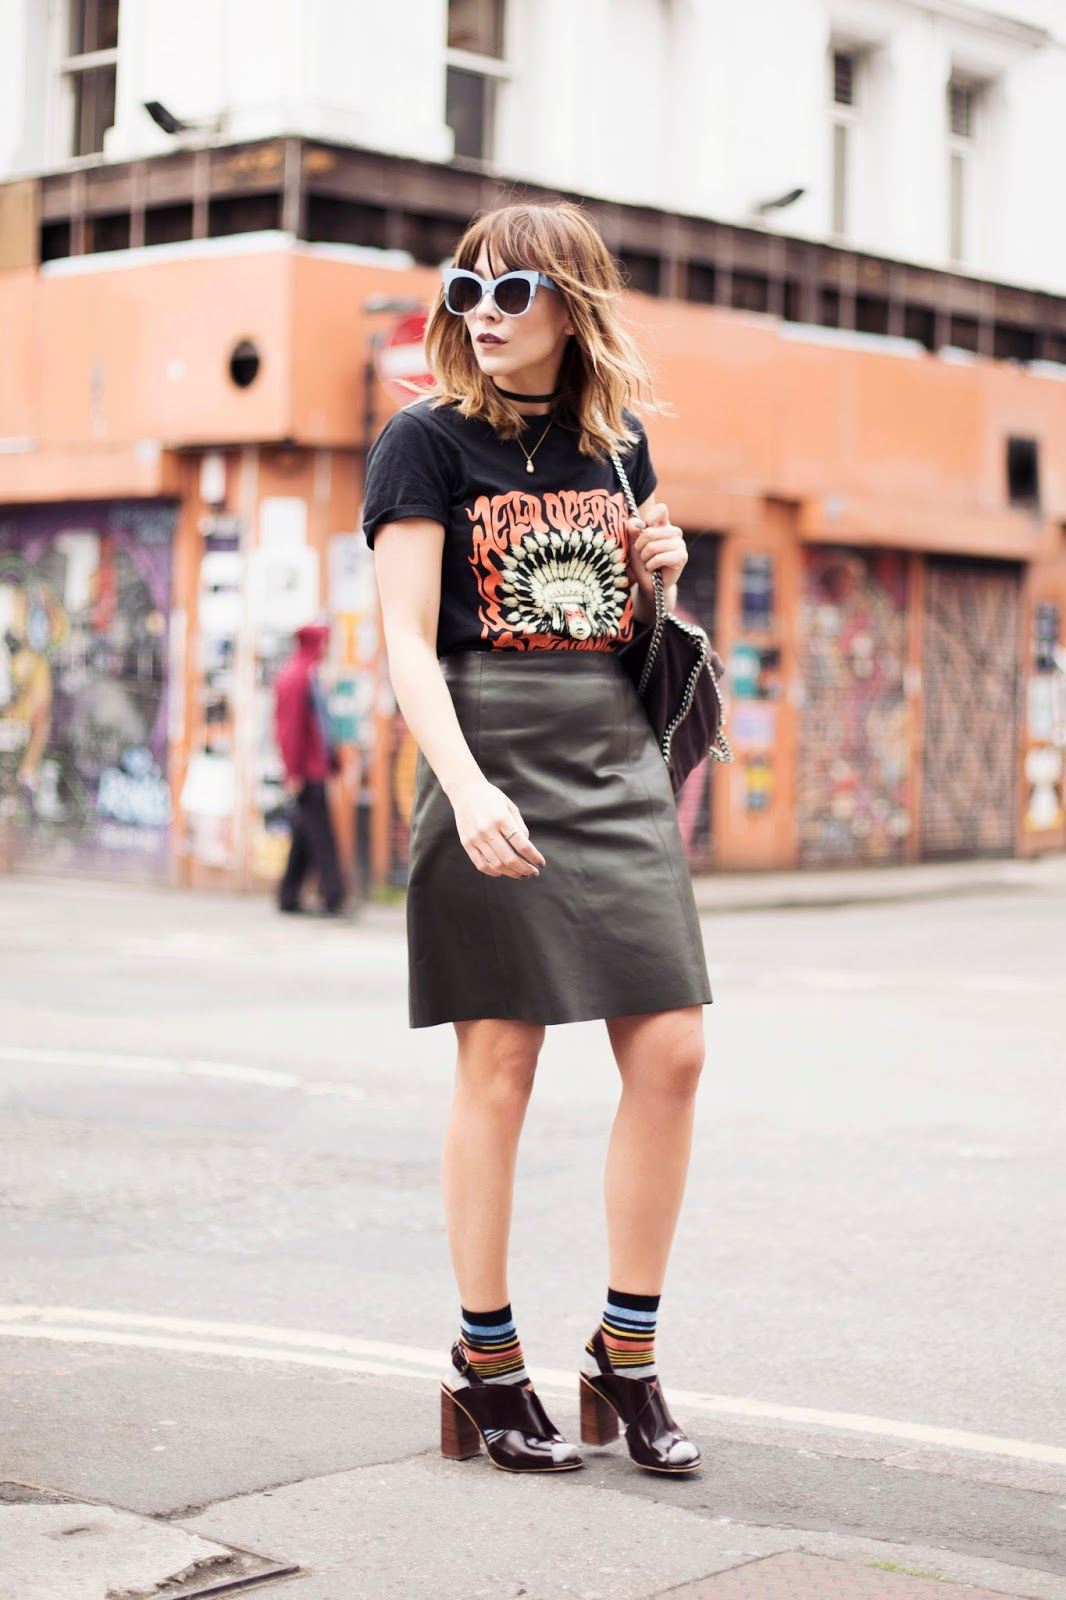 Megan Ellaby Rock & Roll Styling with Jigsaw, ASOS & Stella McCartney